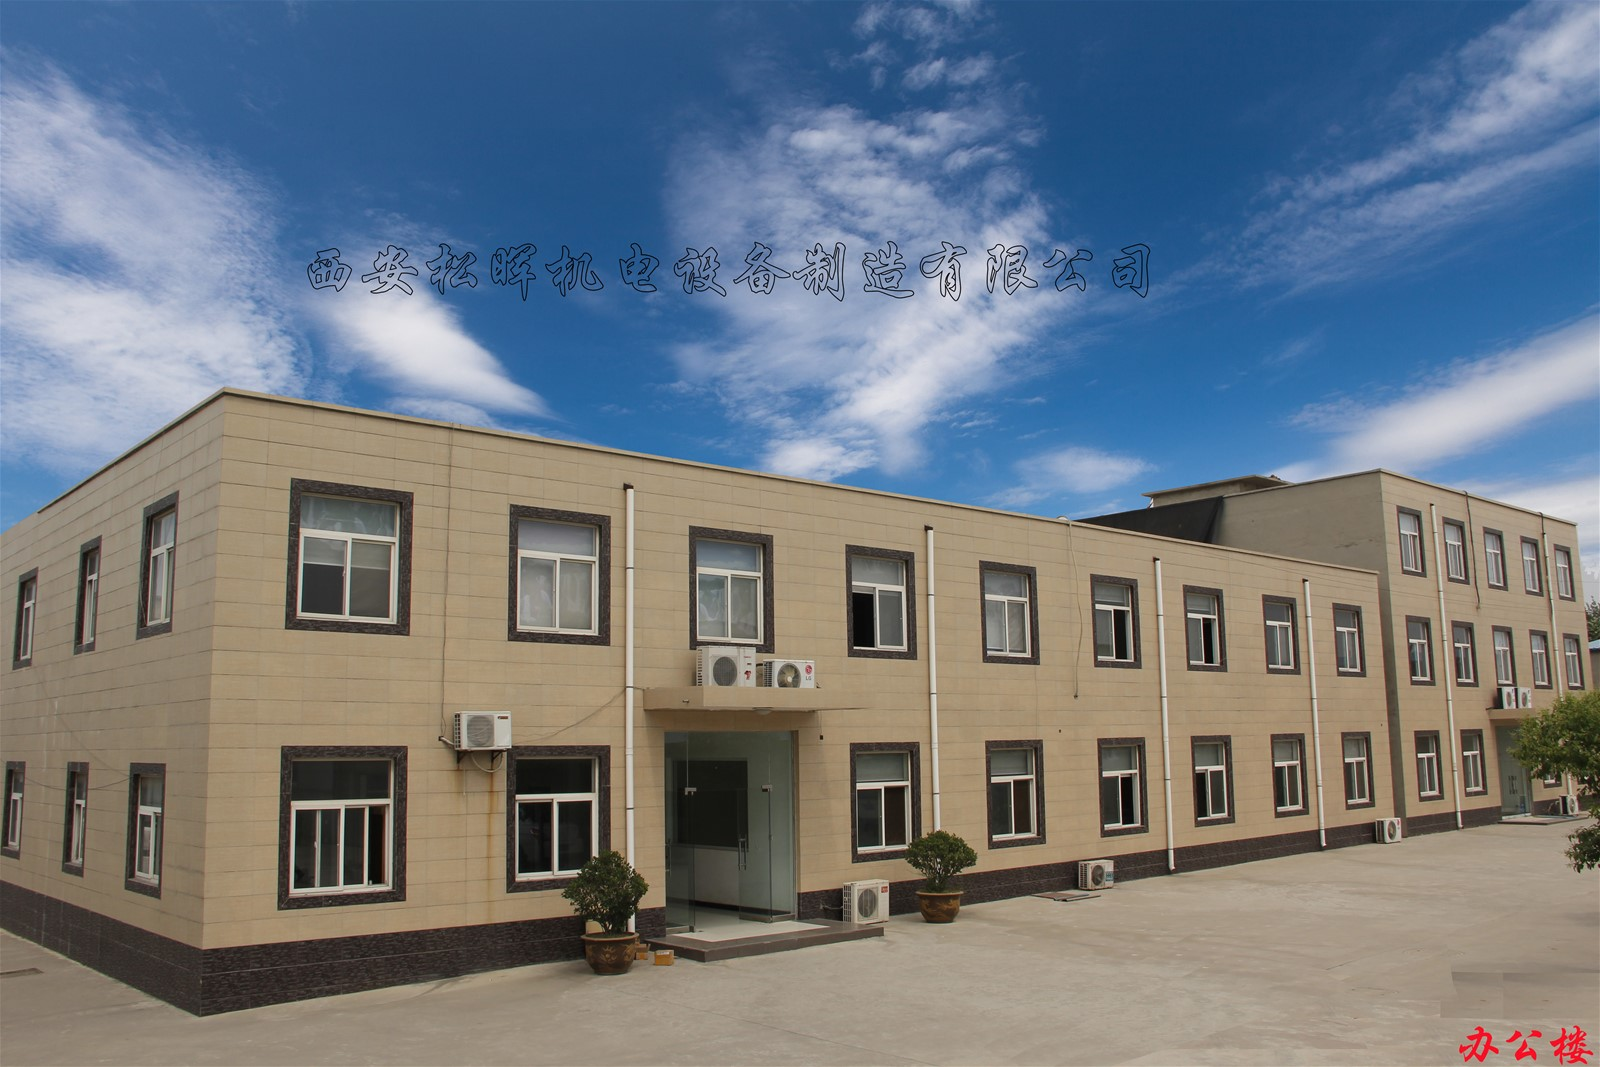 Xi'An Songhui Mechanical & Electrical Manufacturing Co., Ltd.